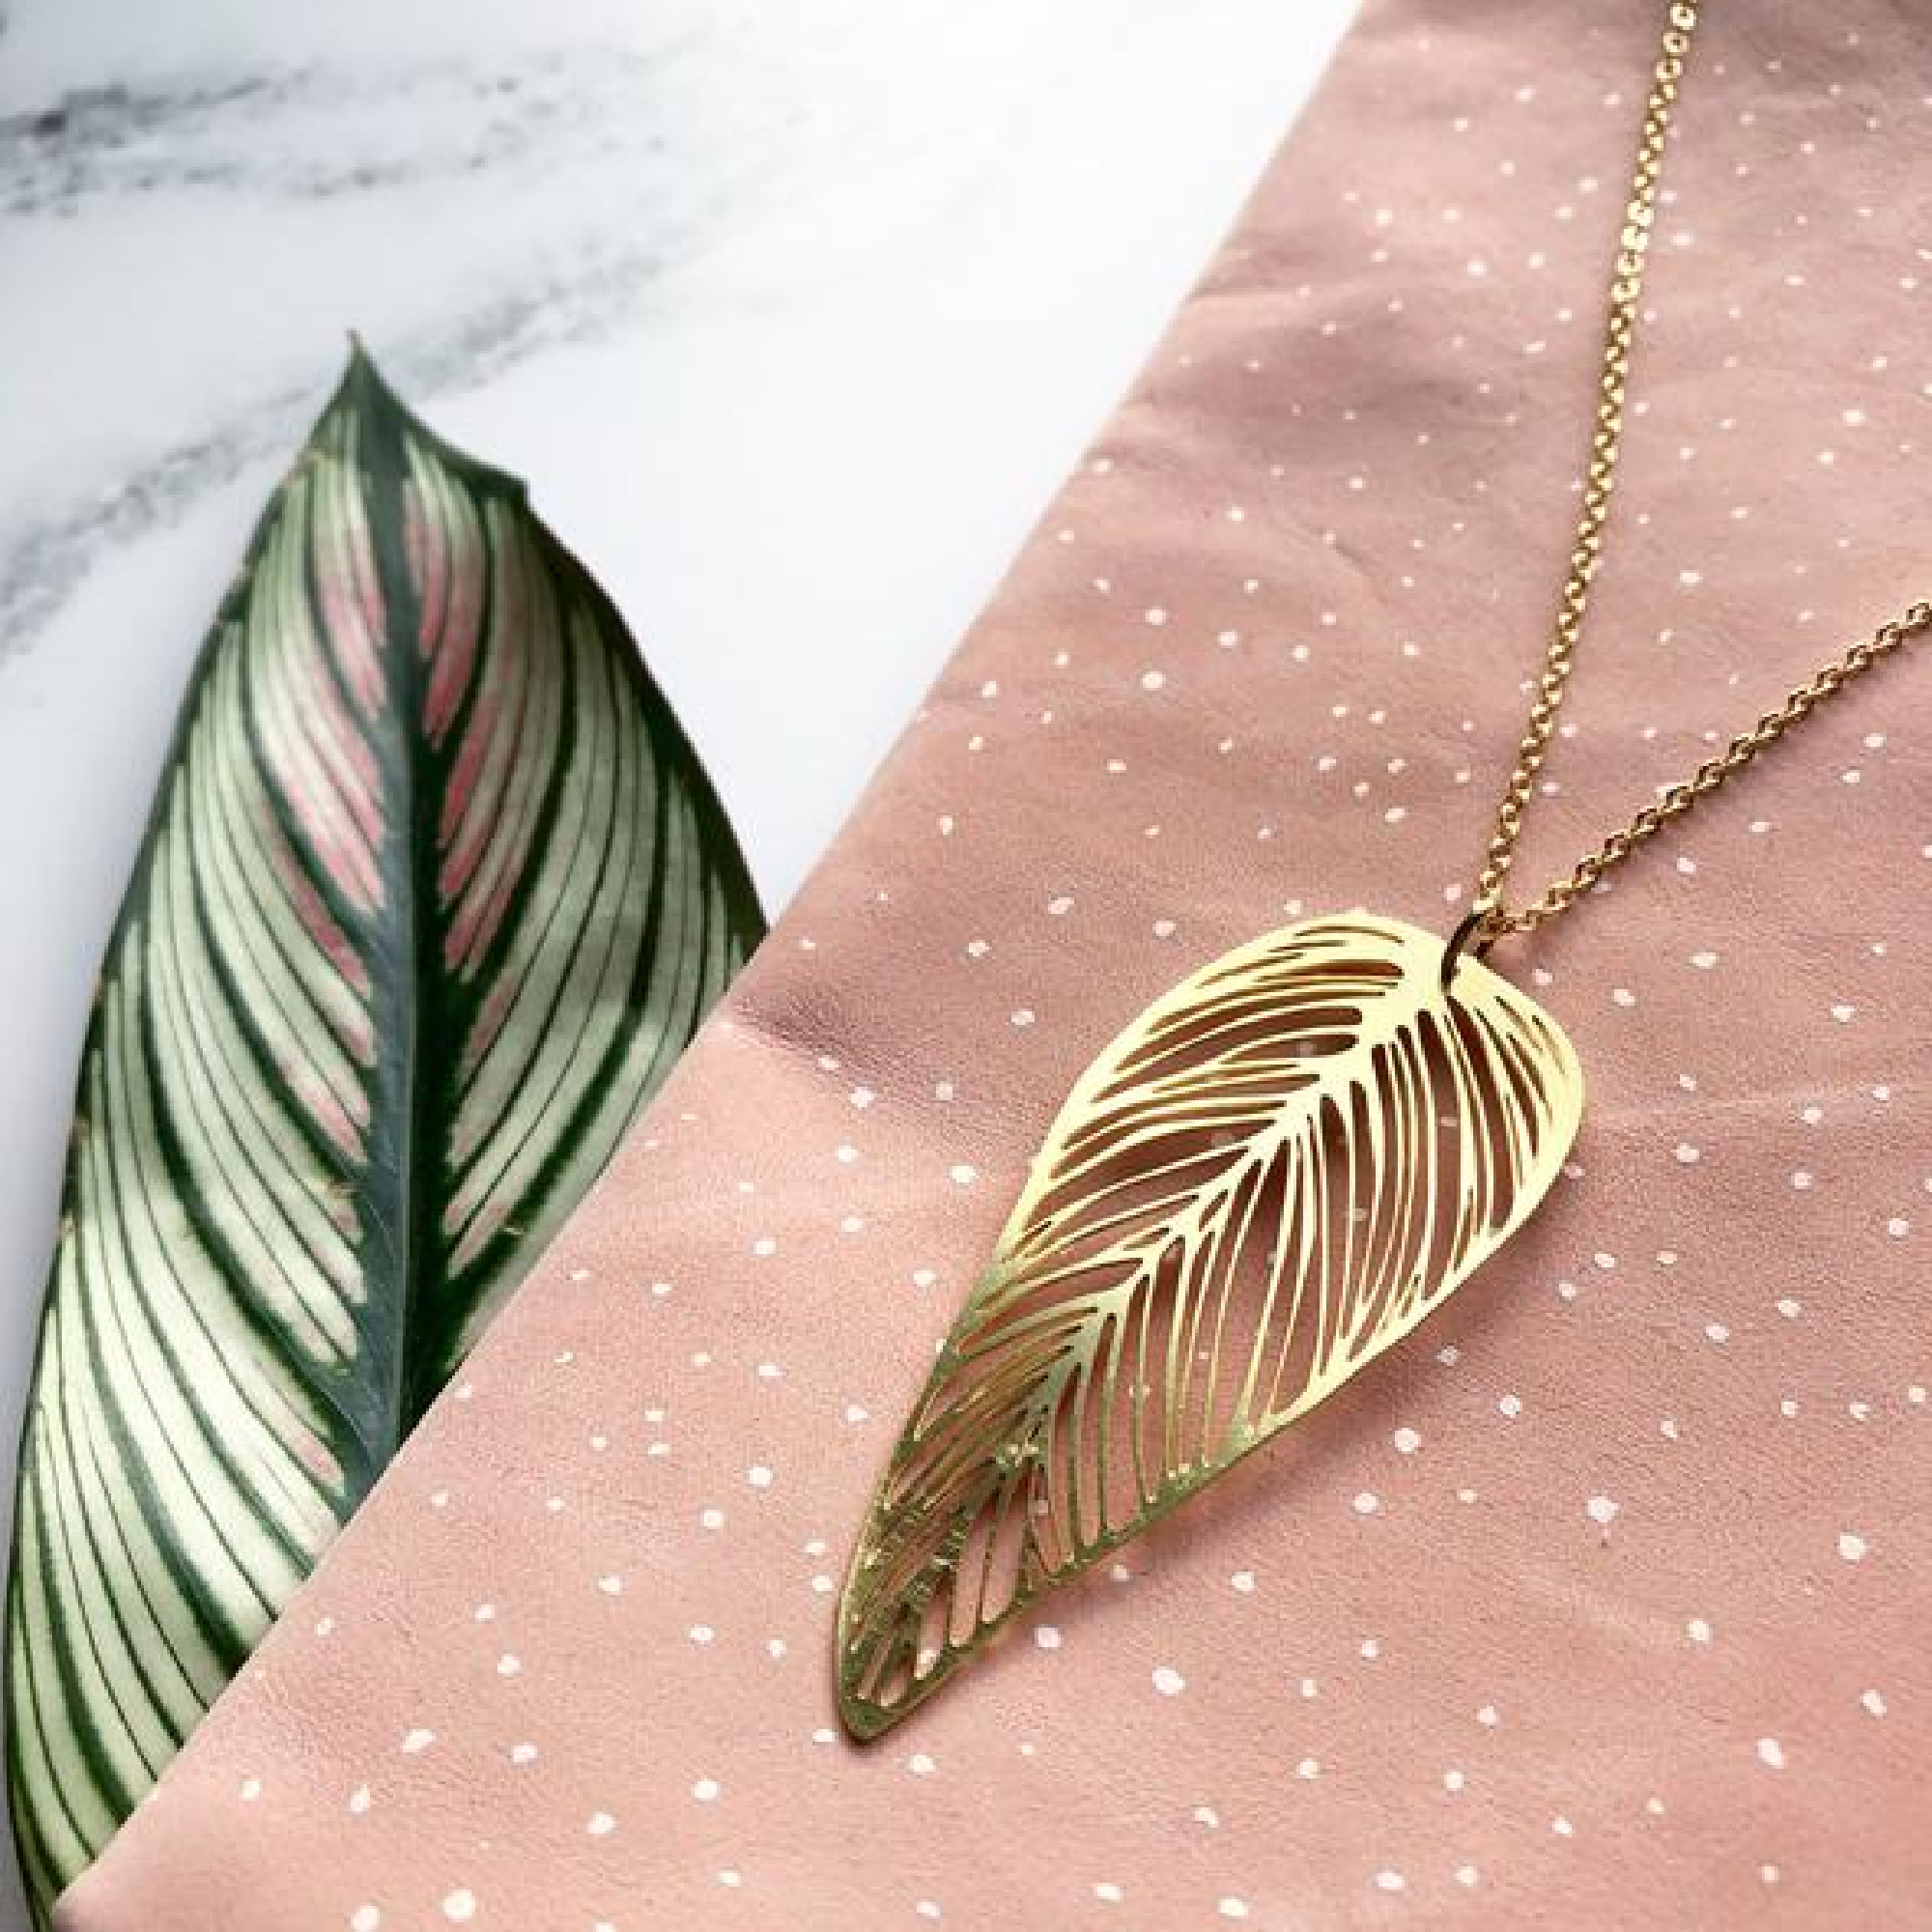 Leaf Necklace by Mica Peet